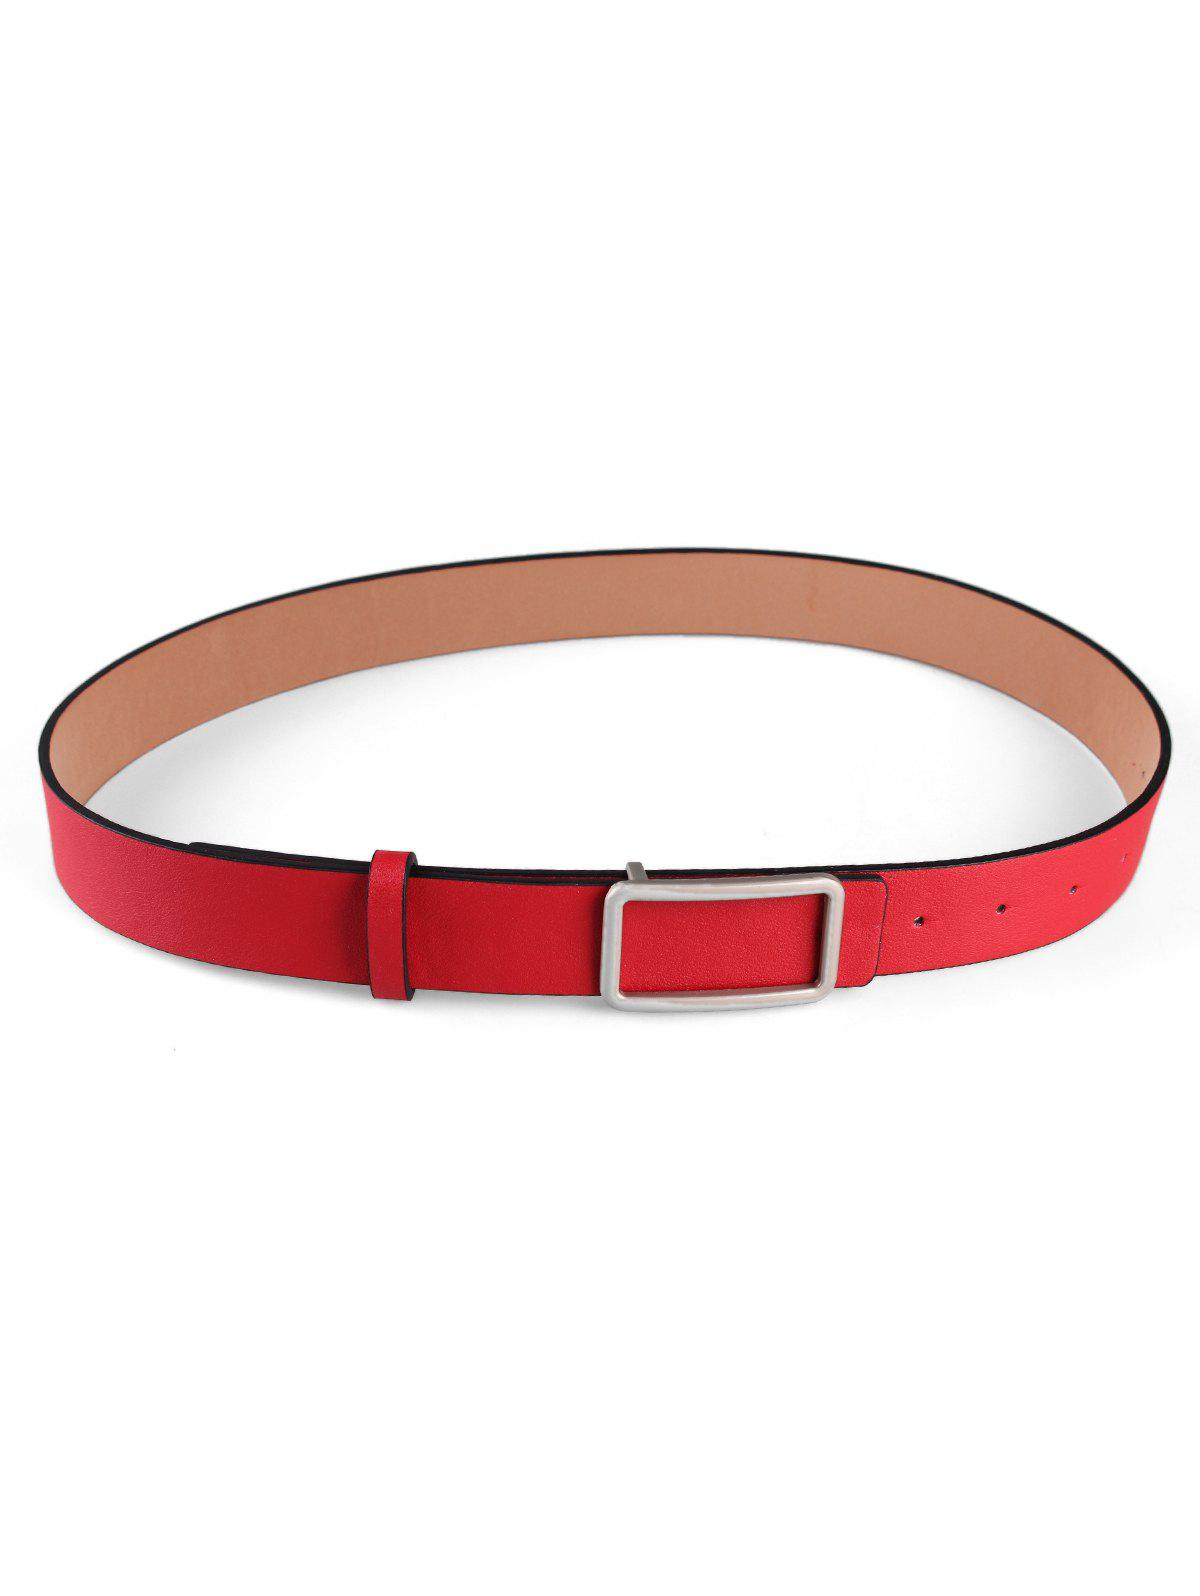 Discount Square Buckle Faux Leather Belt